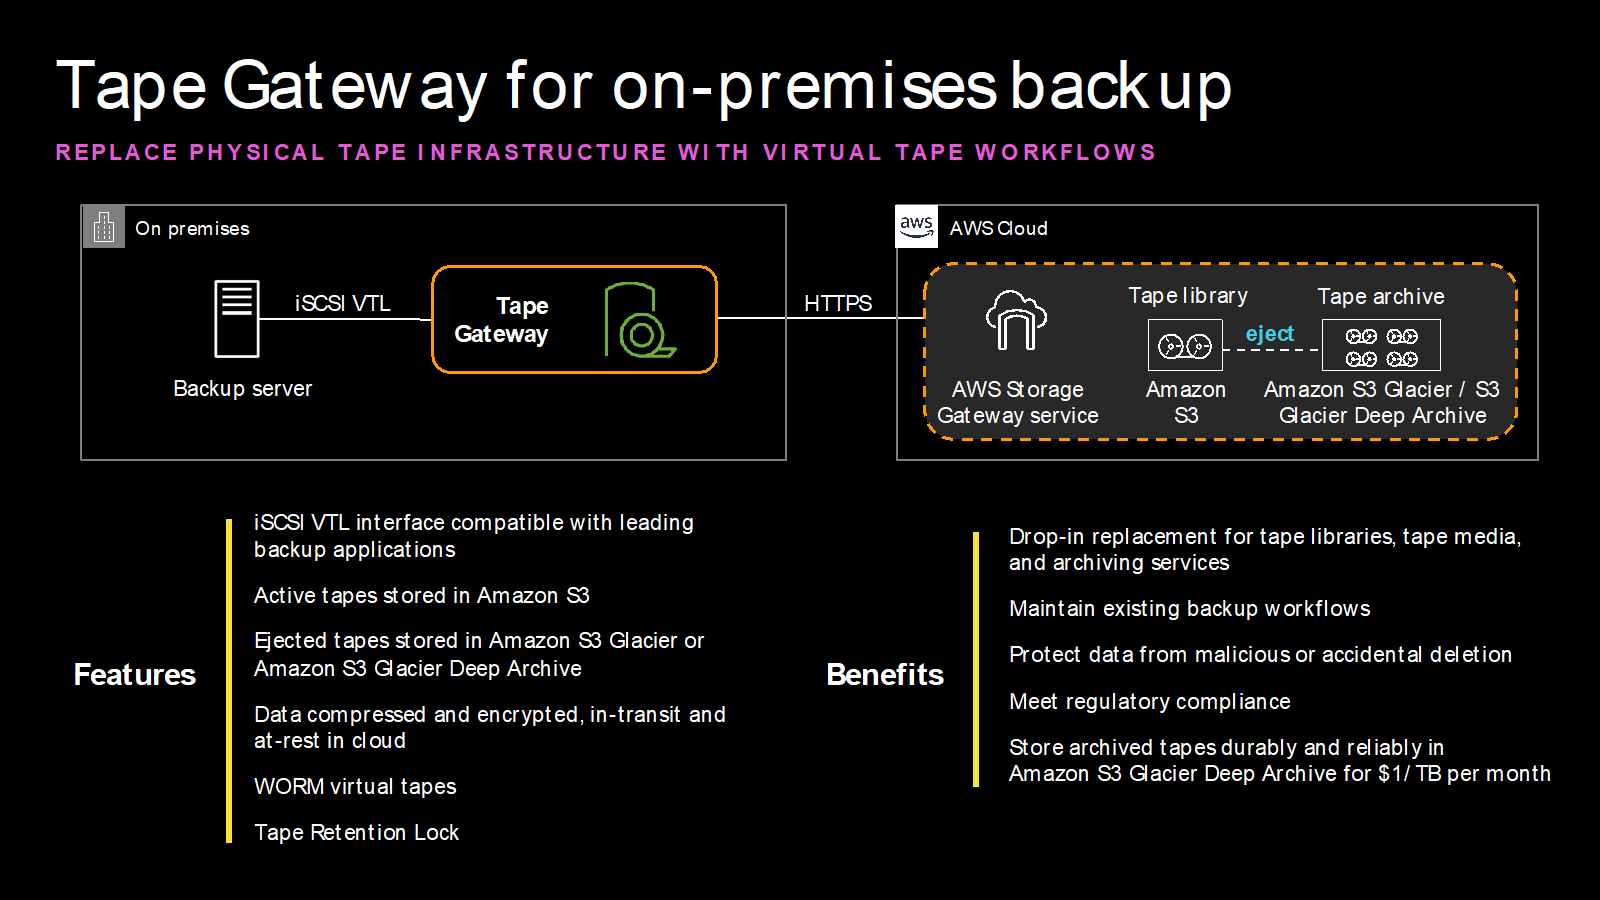 Tape Gateway for on-premises backup - replace physical tape infrastructure with virtual tape workflows